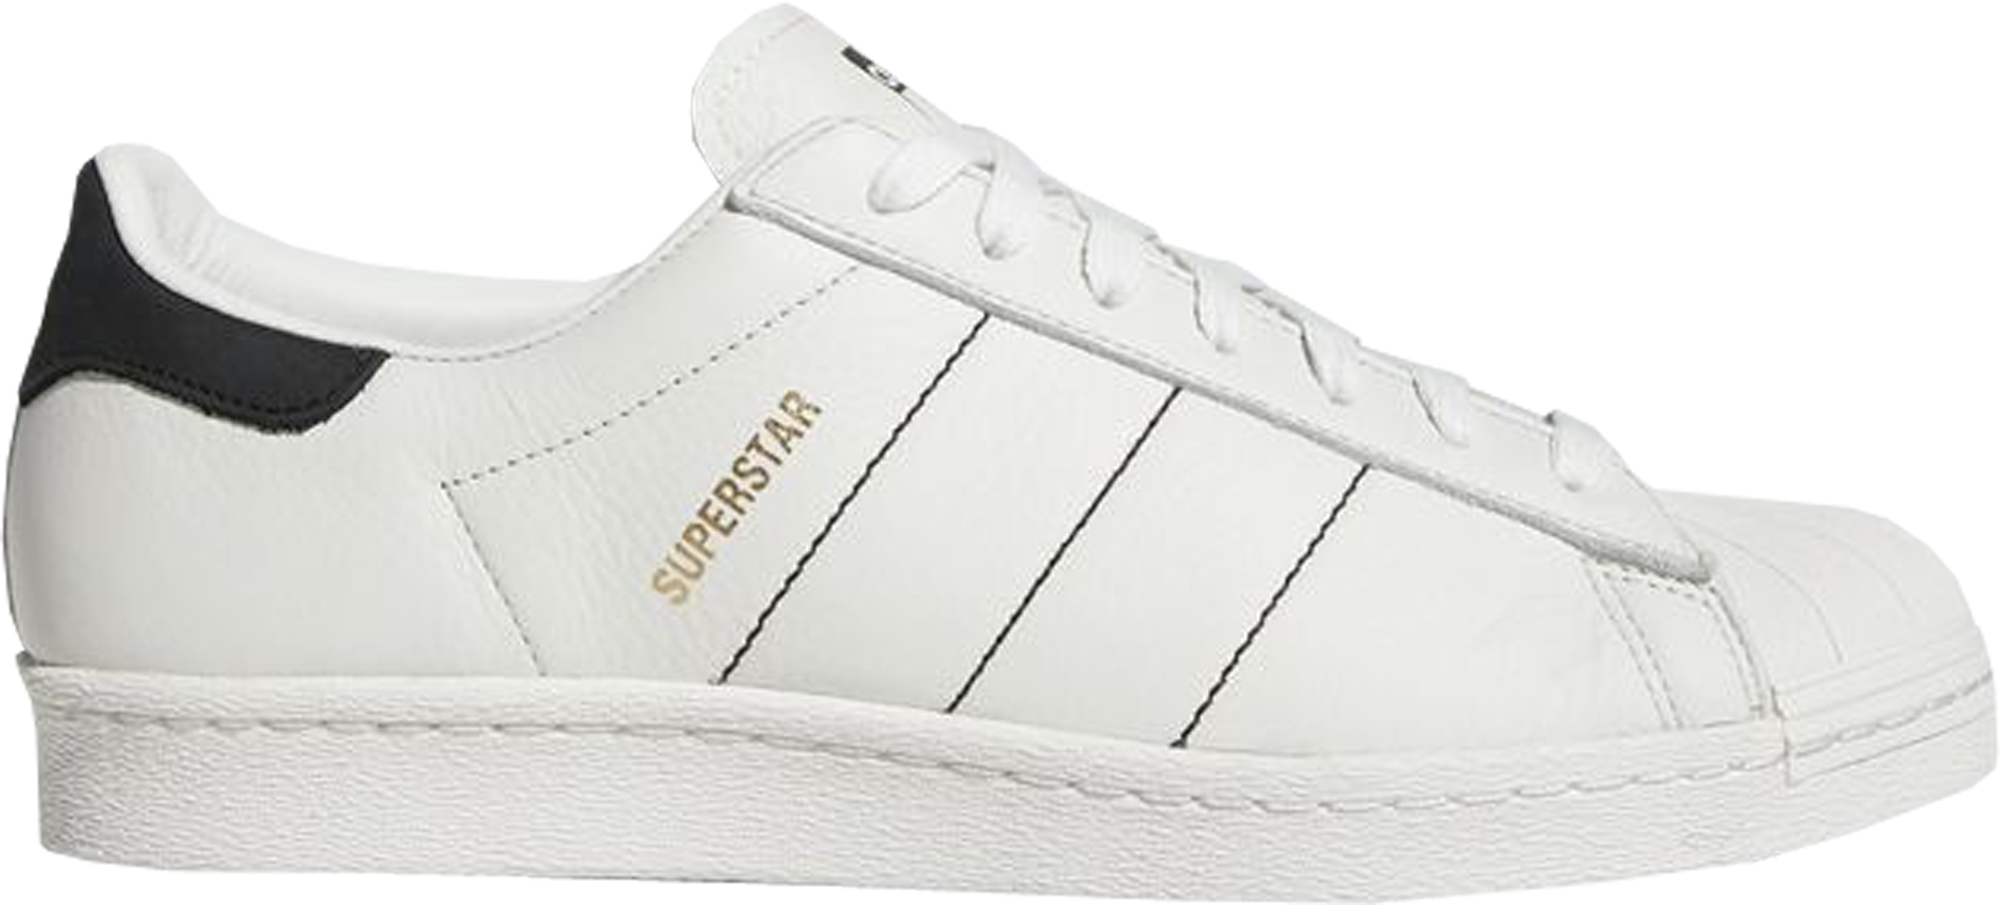 adidas Superstar Handcrafted Pack (Off White)